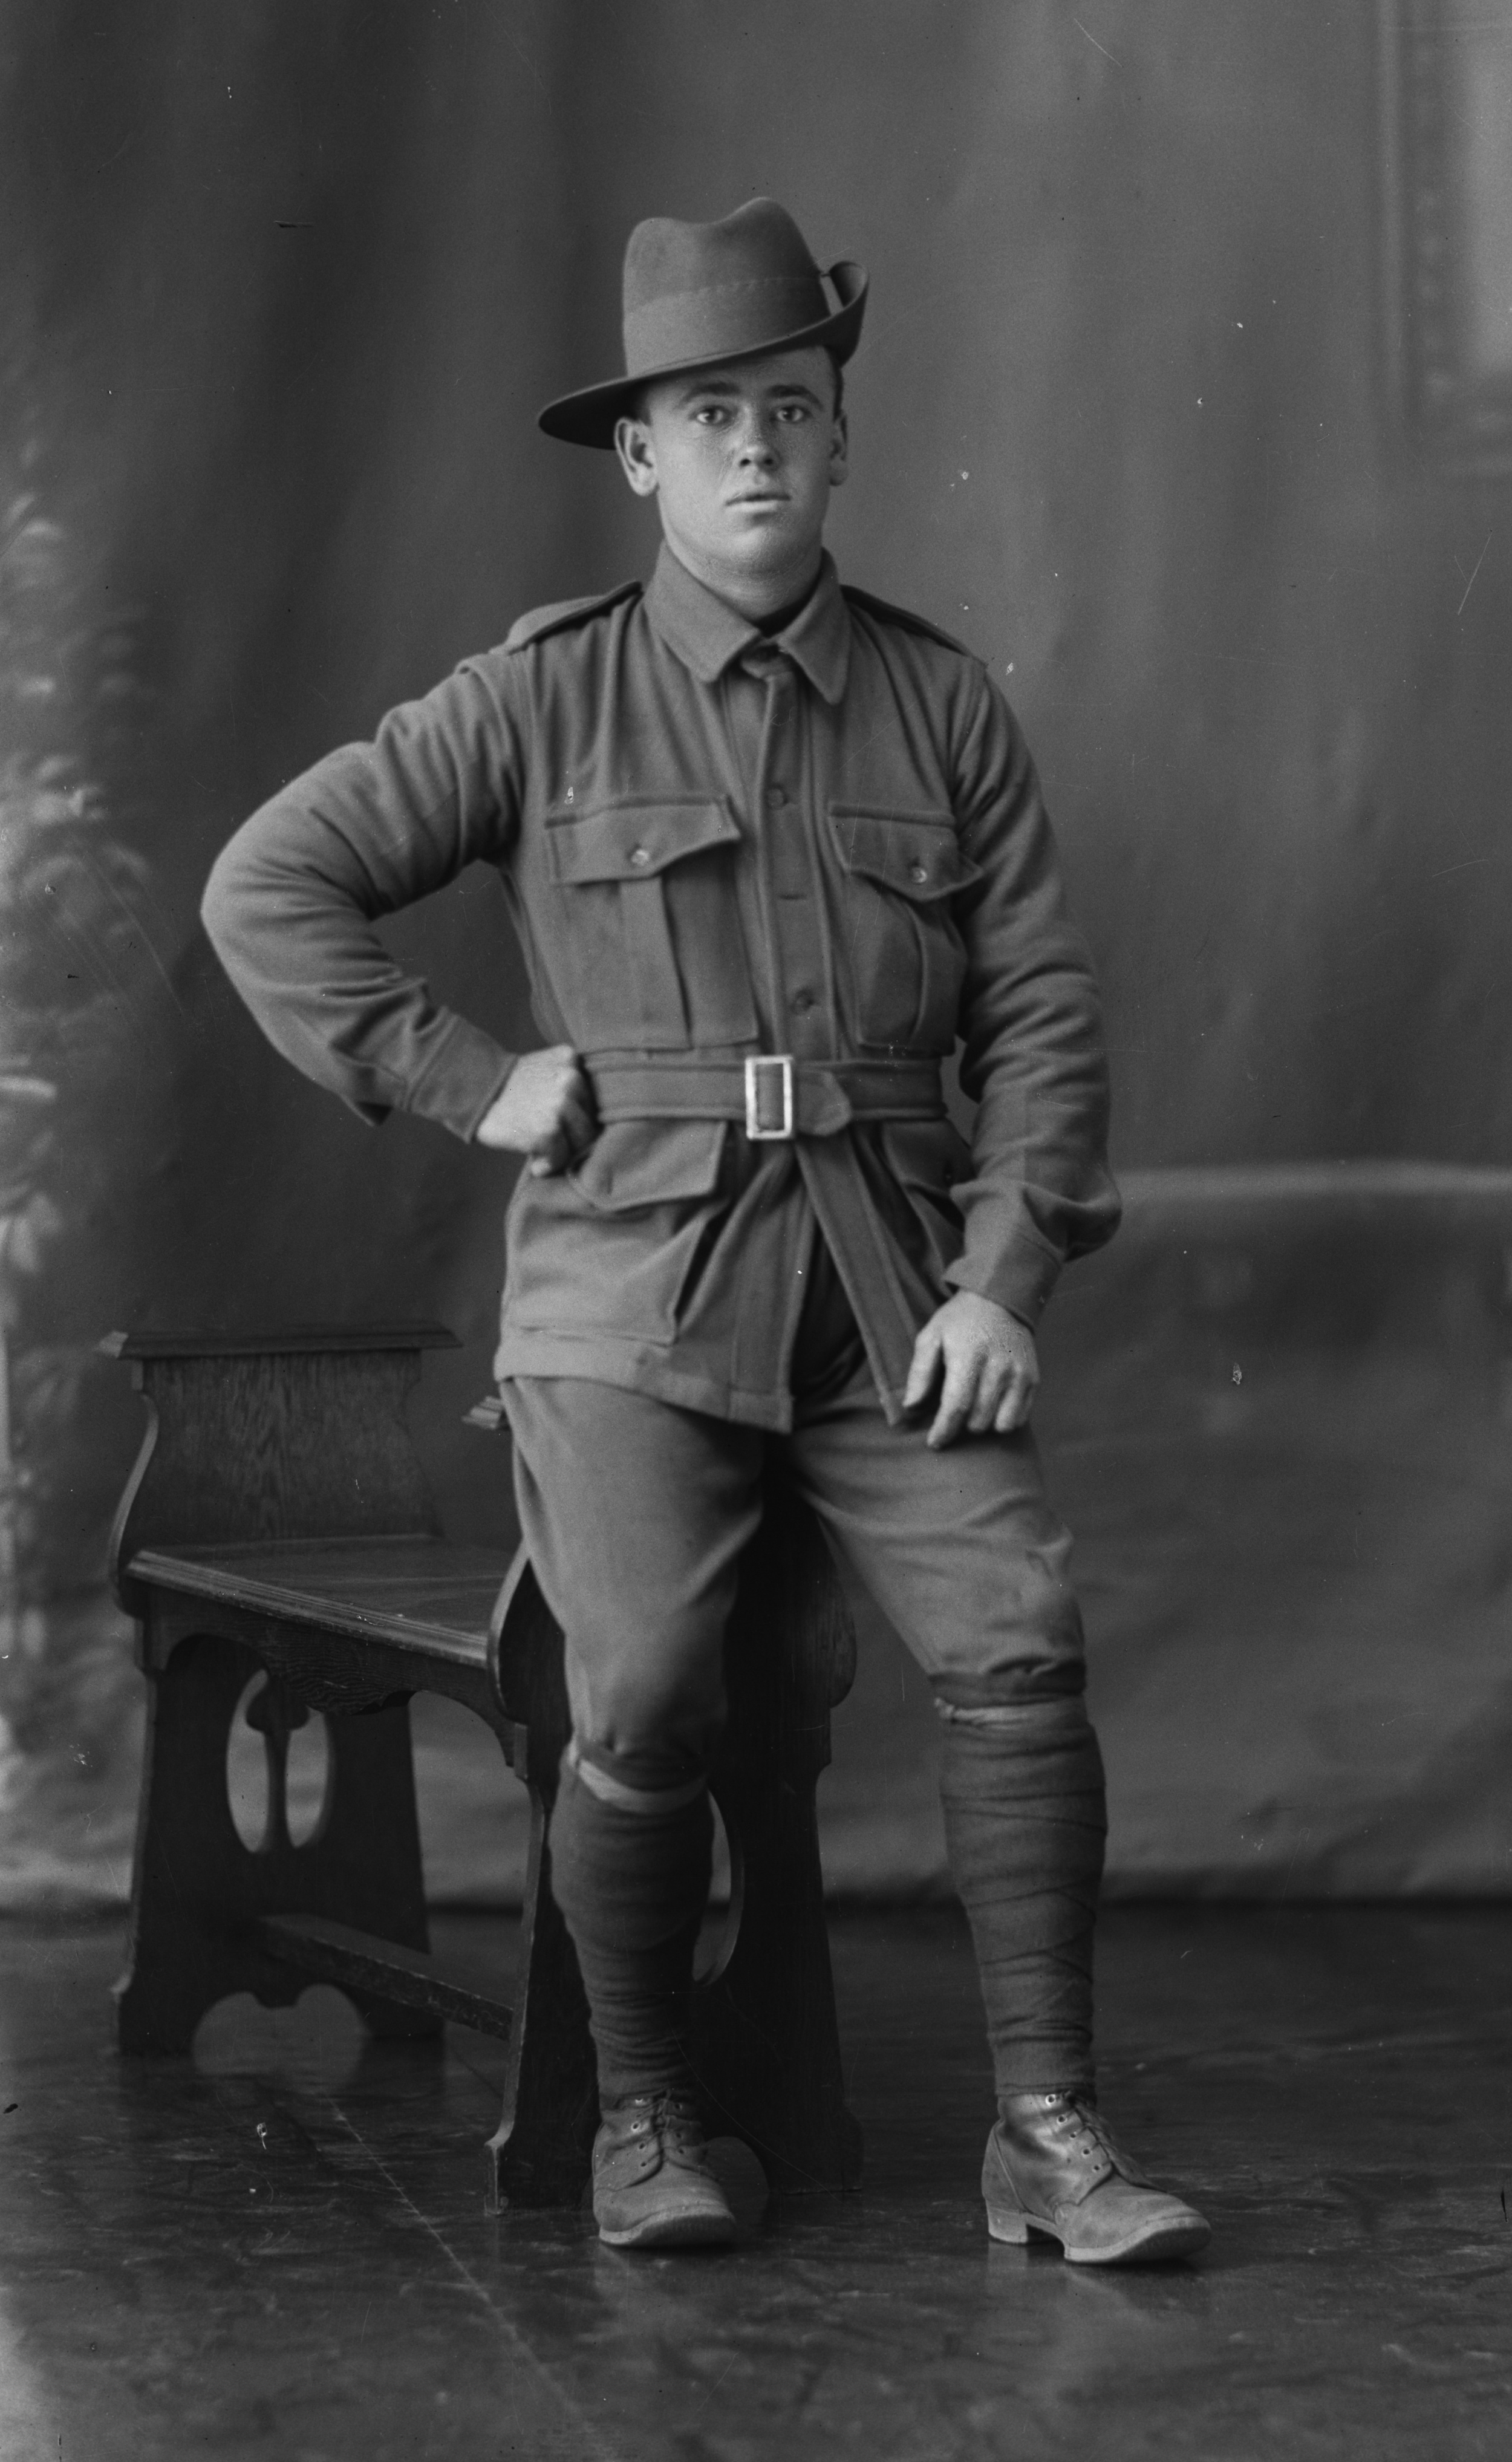 Photographed at the Dease Studio, 117 Barrack Street Perth WA Image courtesy of the State Library of Western Australia: 108315PD